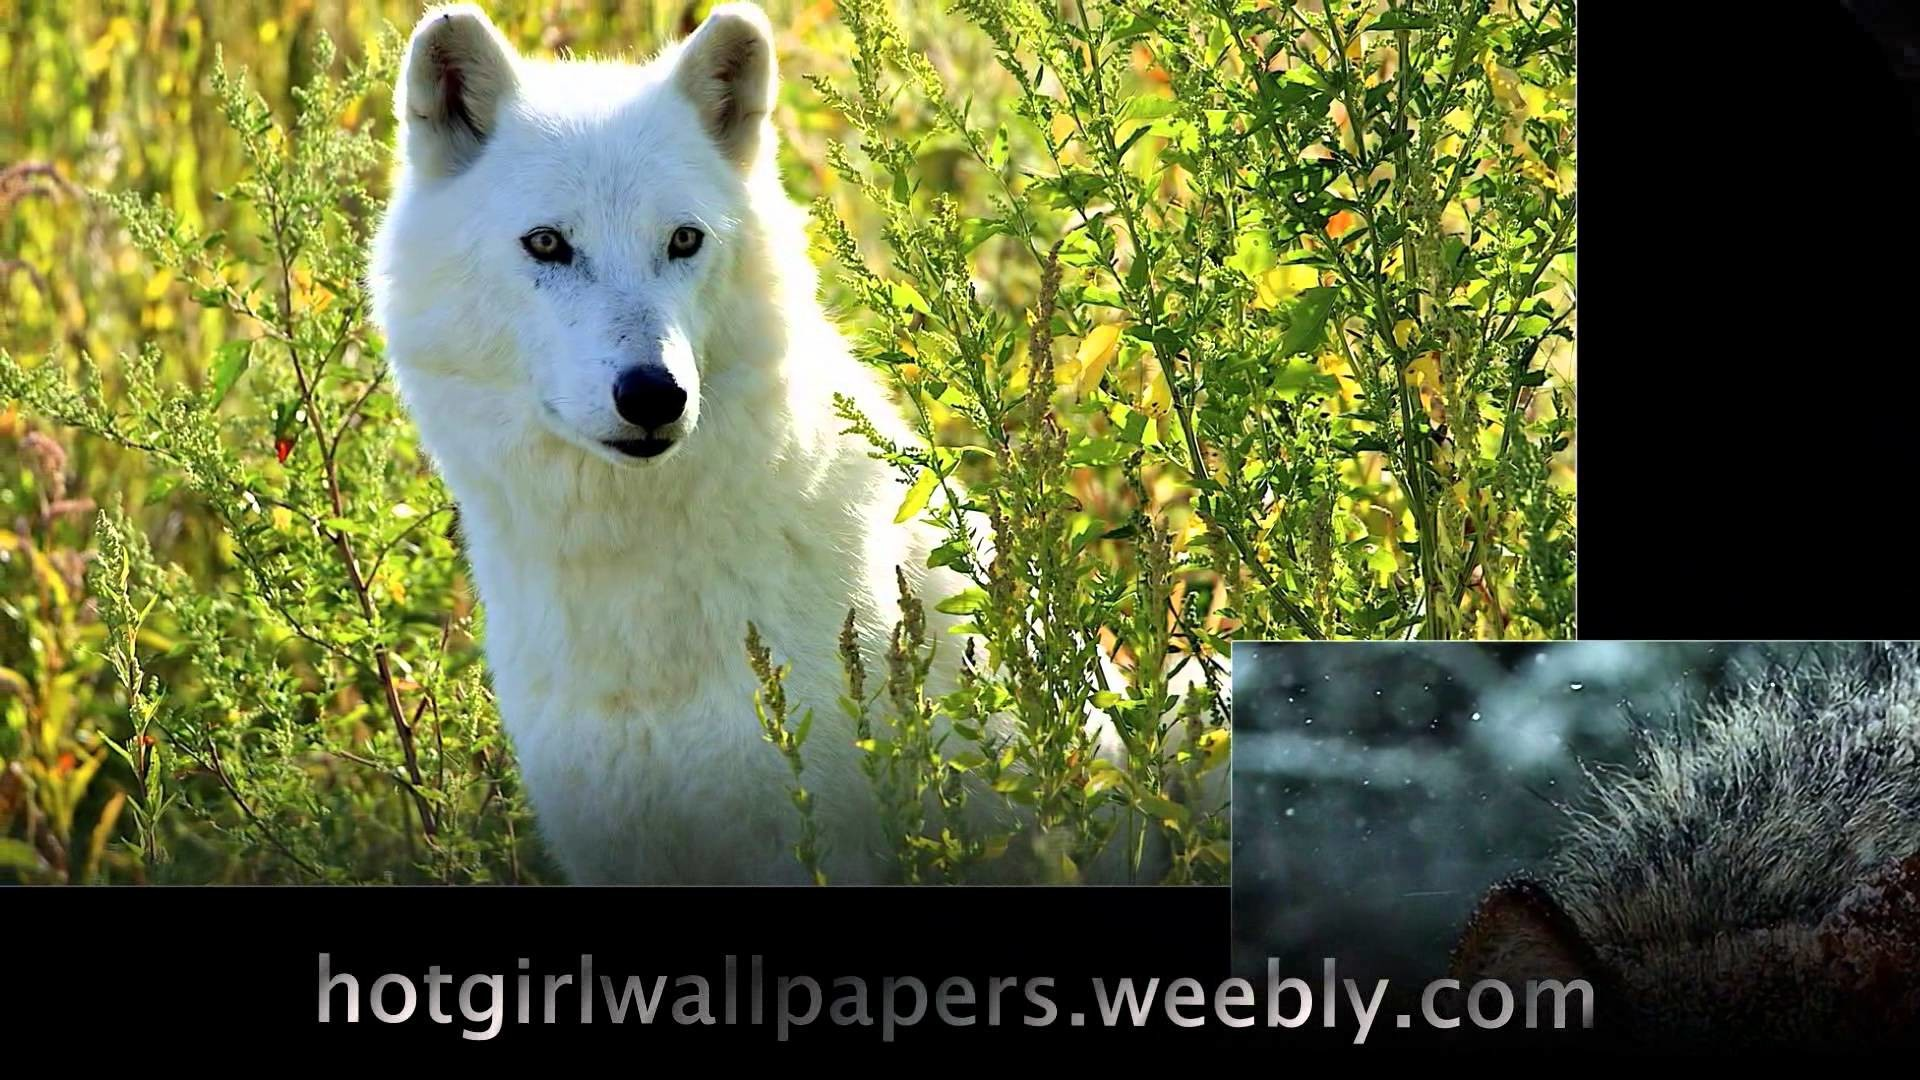 1920x1080 Wolves Wallpaper amazing cute images of wolves where do wolf live cool  photography - YouTube